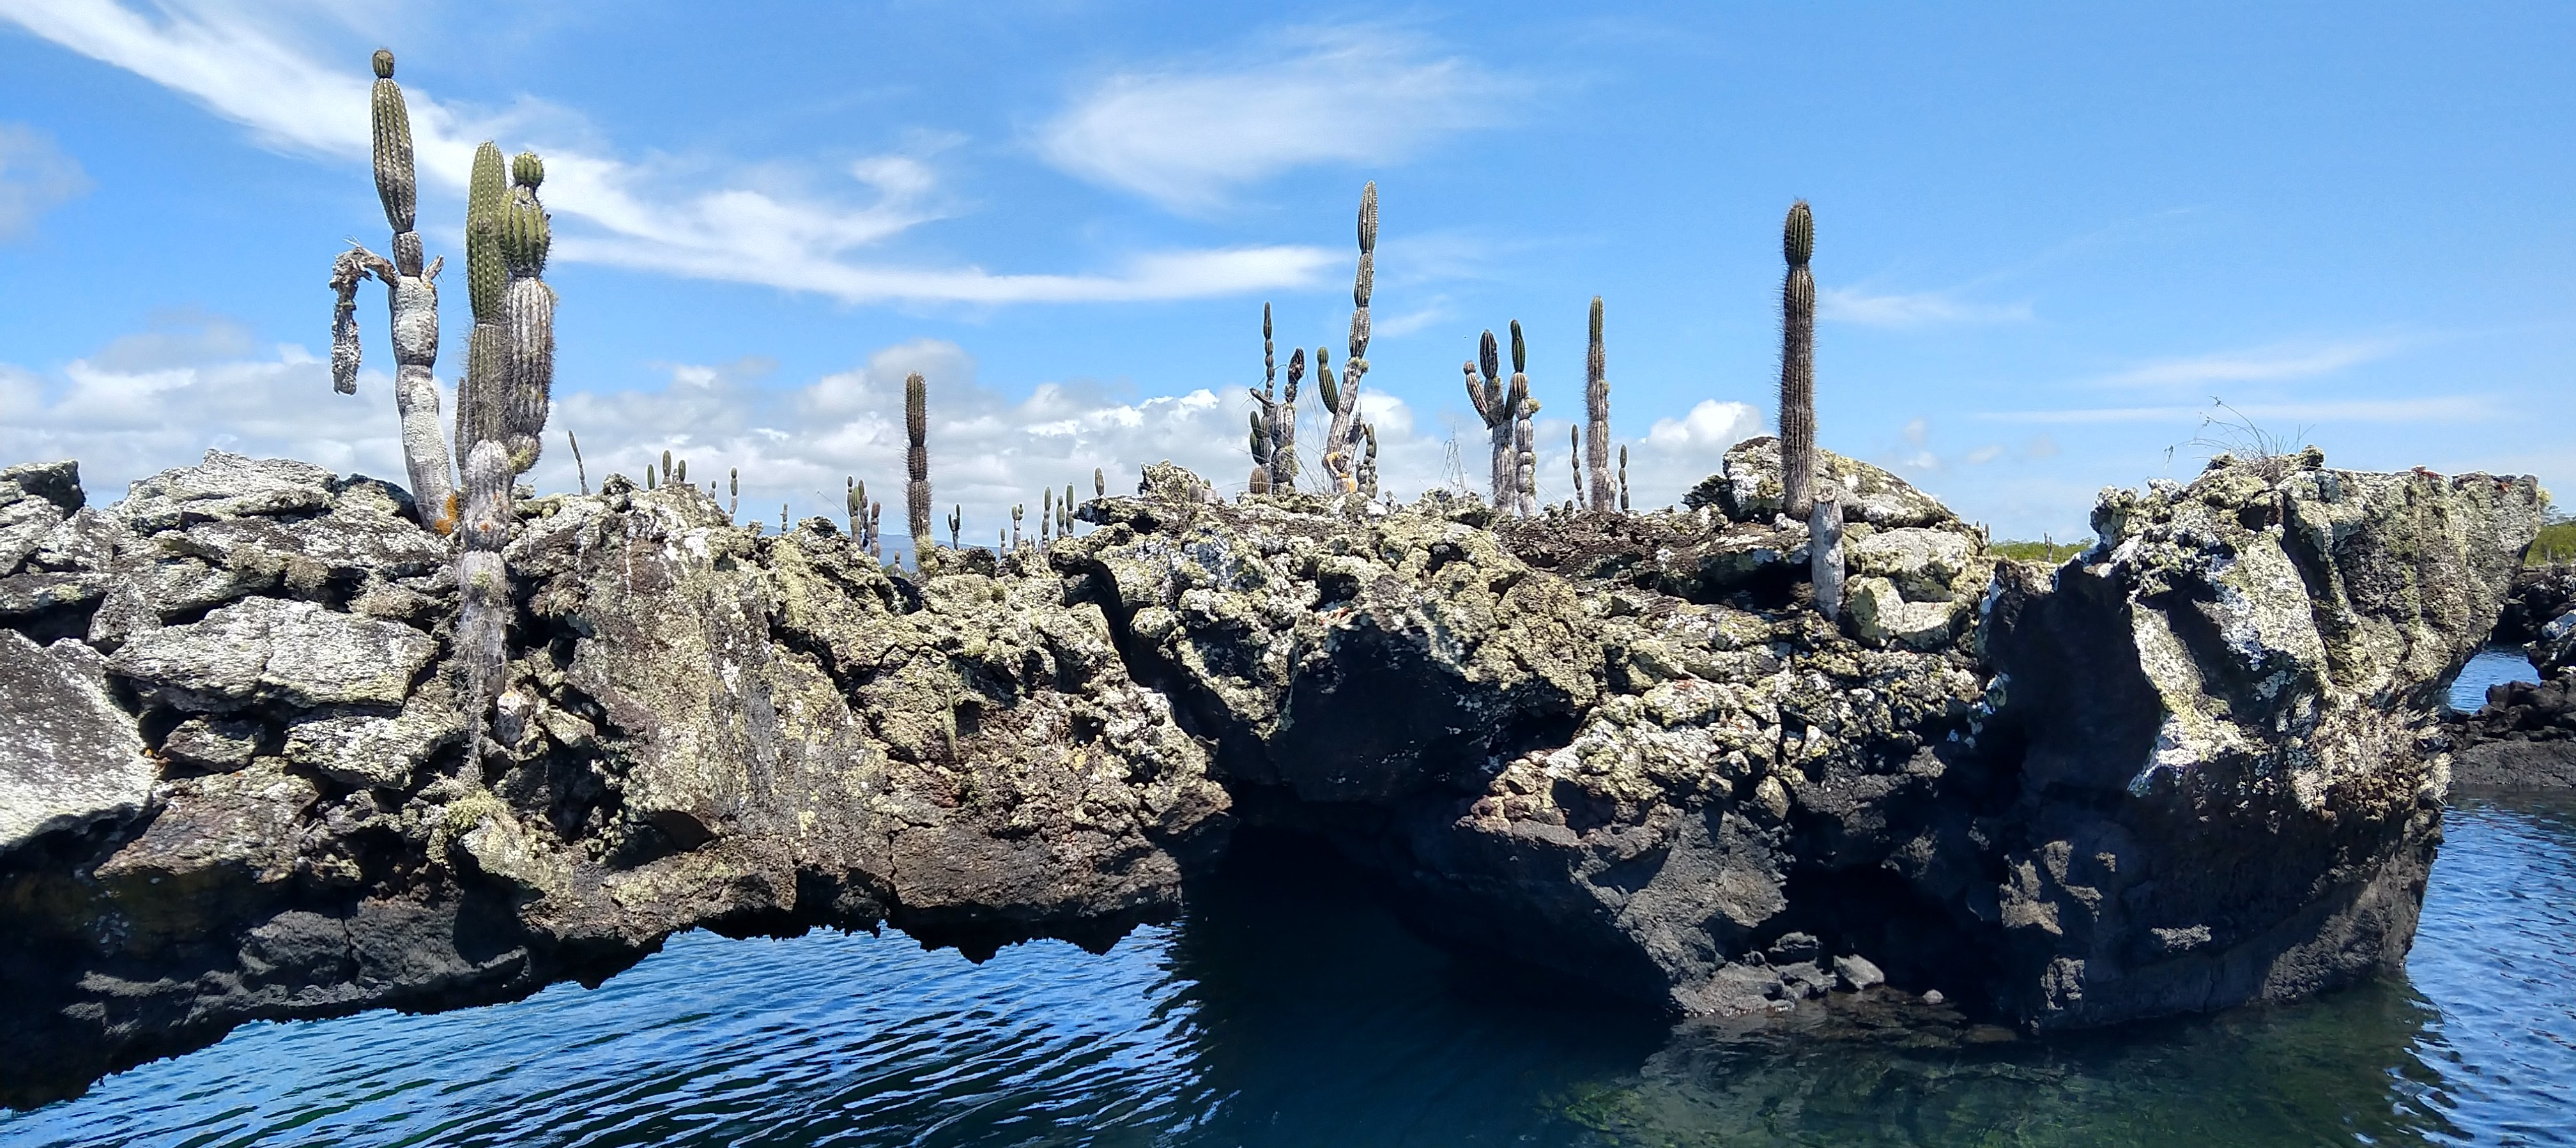 The tunnels in the Galapagos Islands